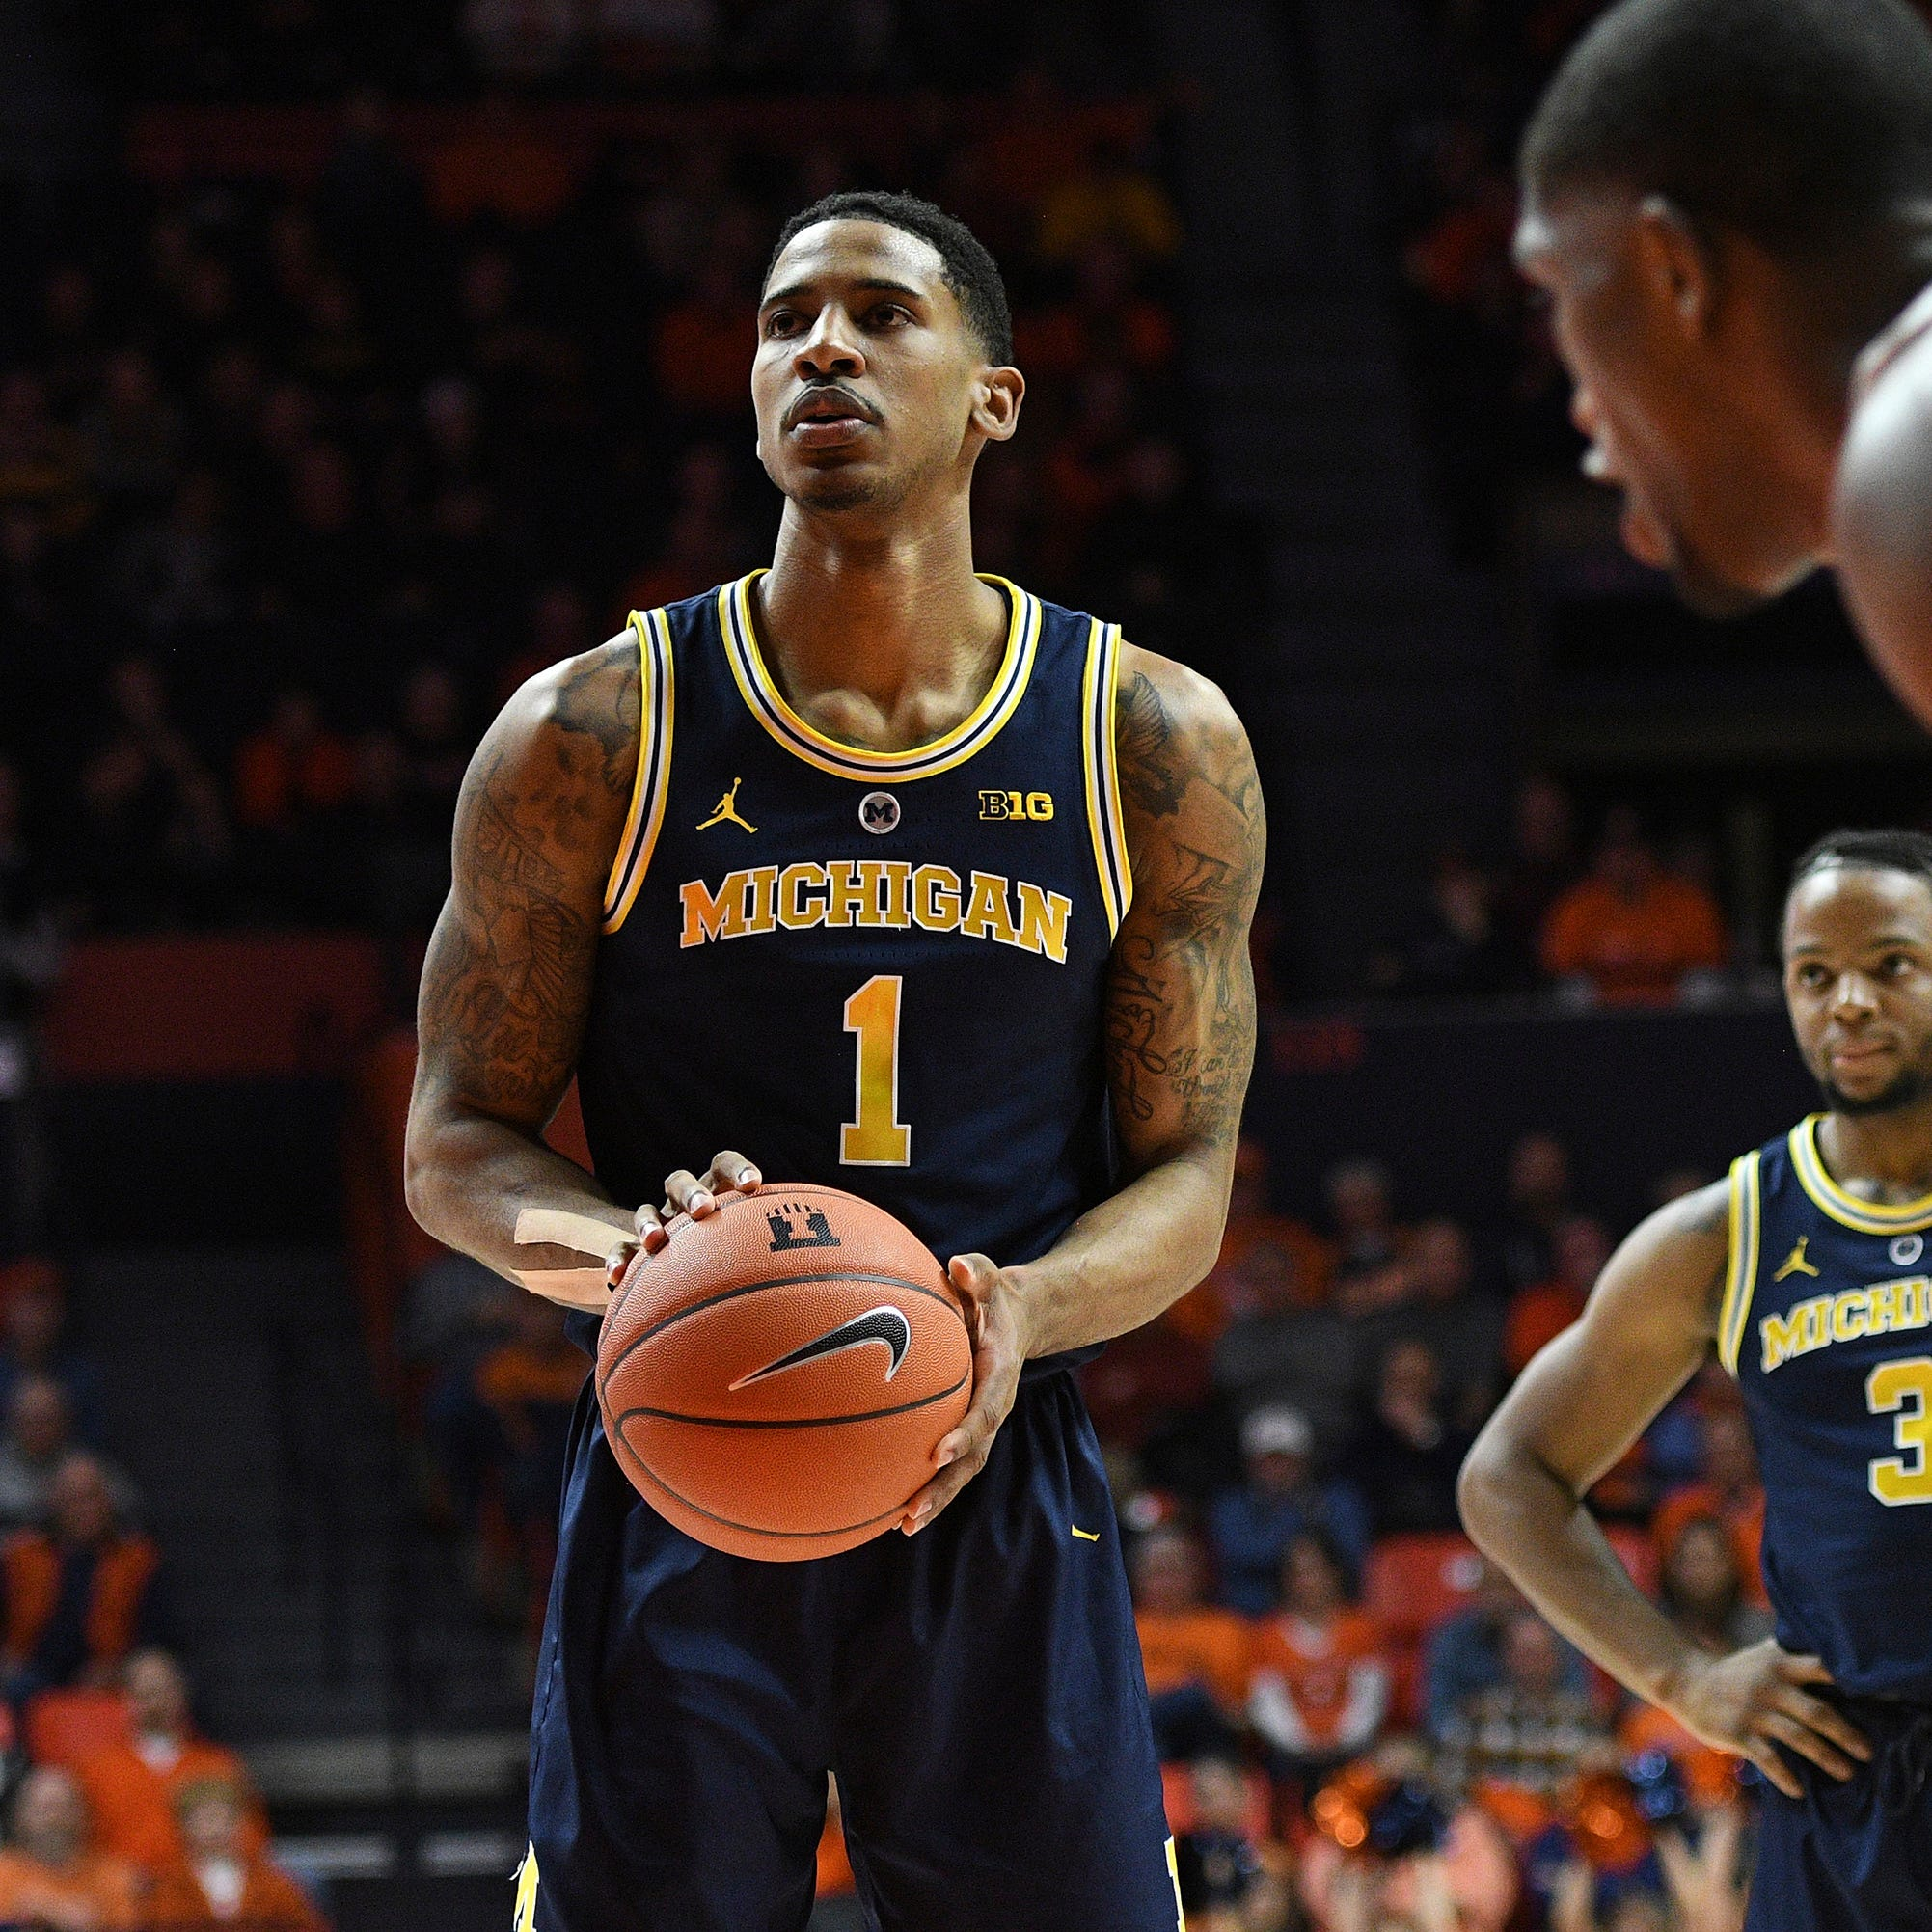 UM appears to leave late free-throw struggles in past